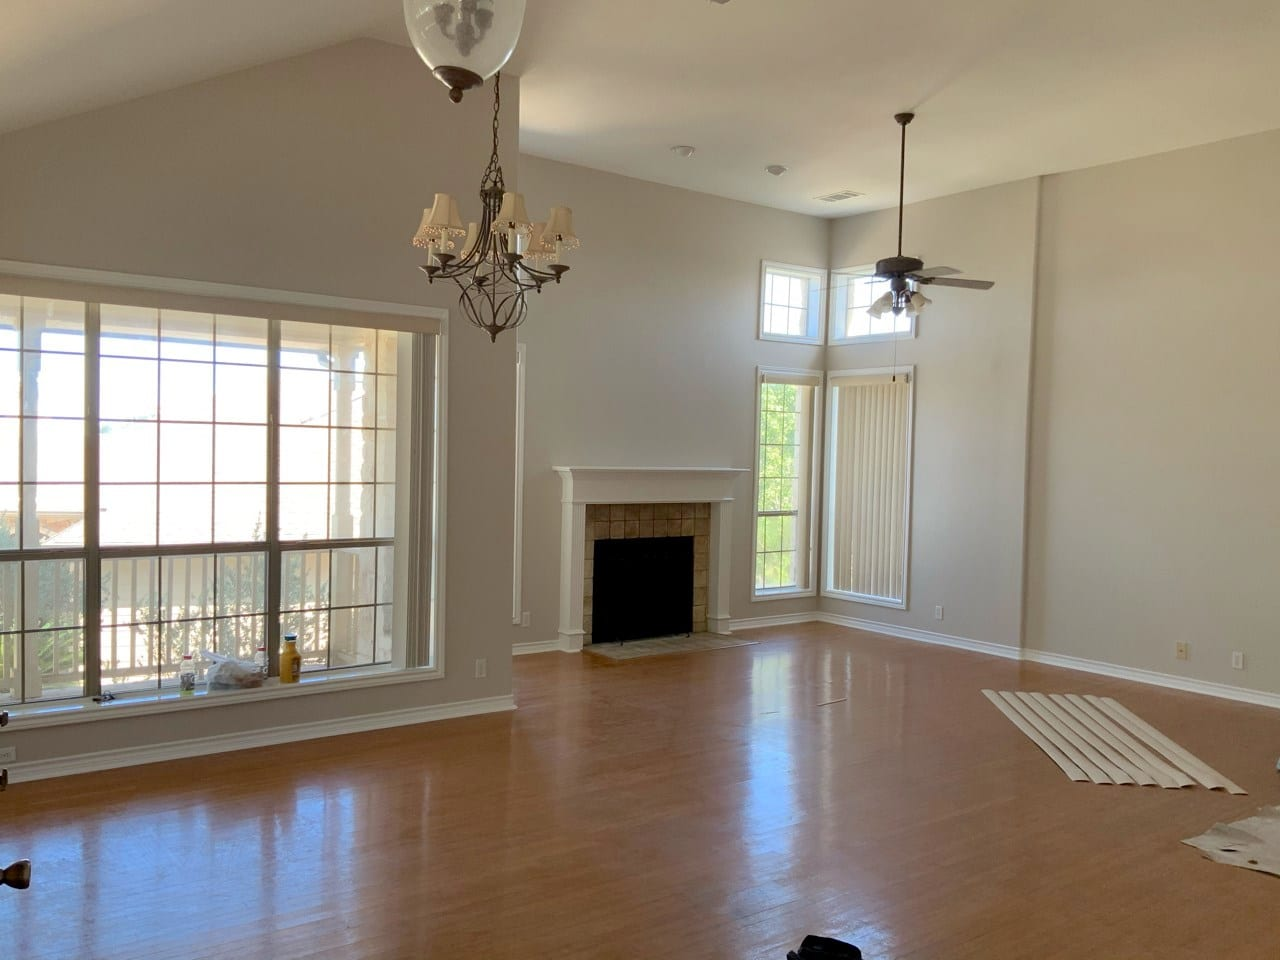 painted living room interior with wood floors